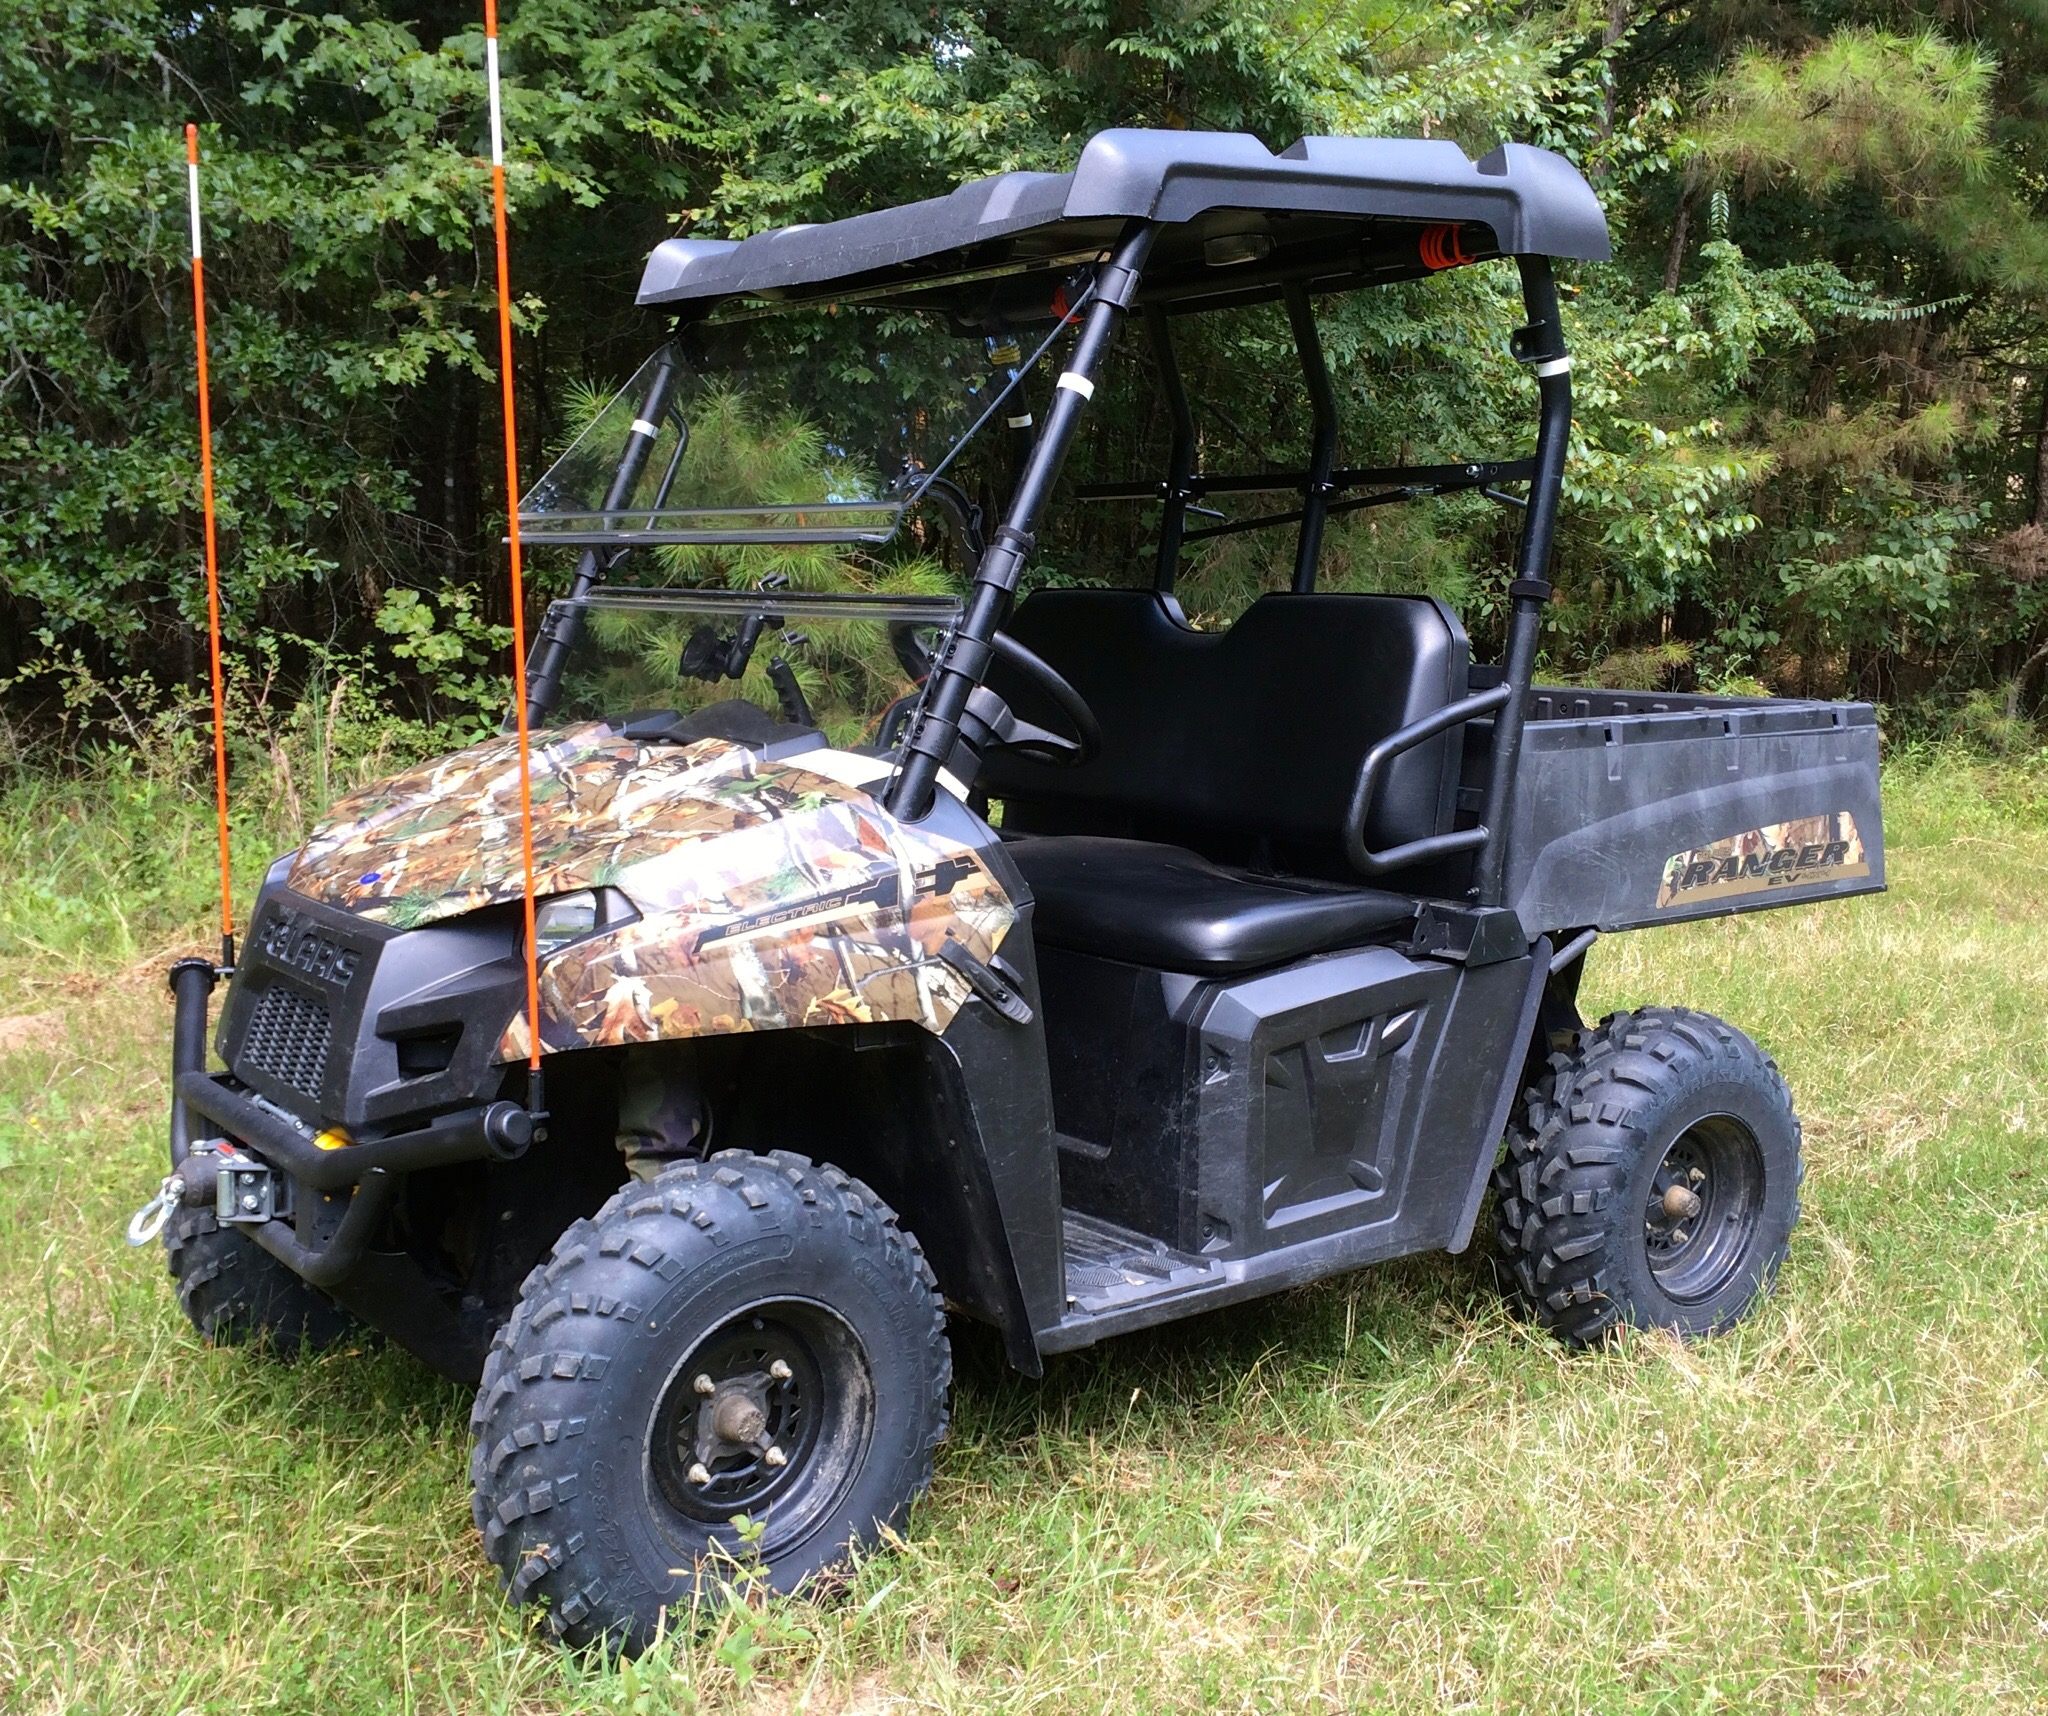 polaris ranger ev photo thread. Black Bedroom Furniture Sets. Home Design Ideas